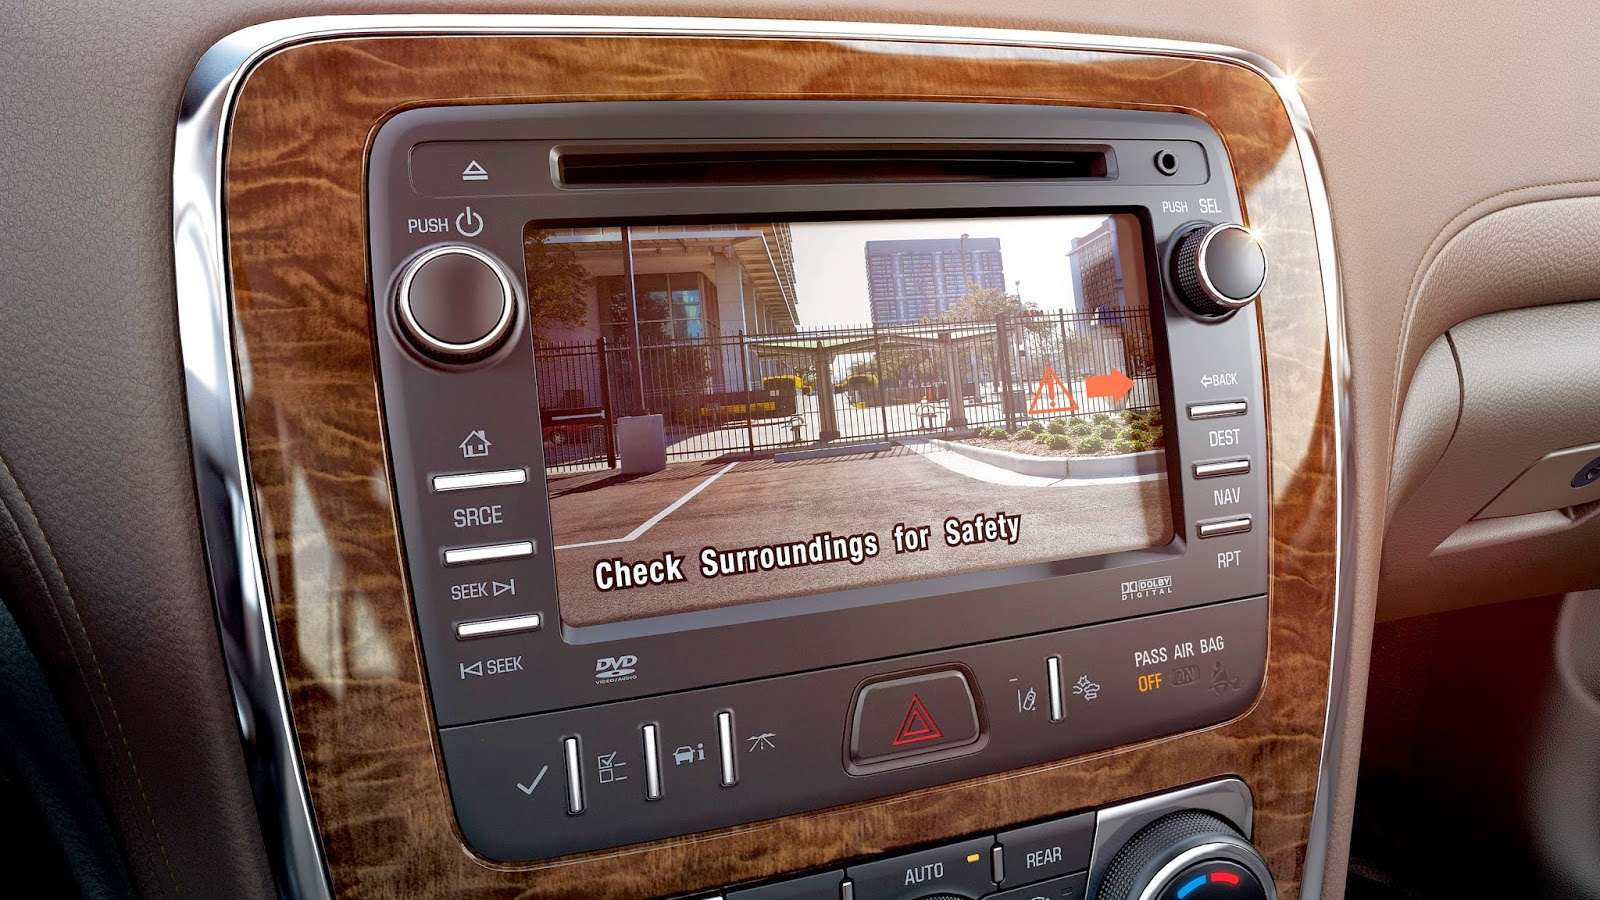 Rearview Cameras Standard On 2015 Buick Models